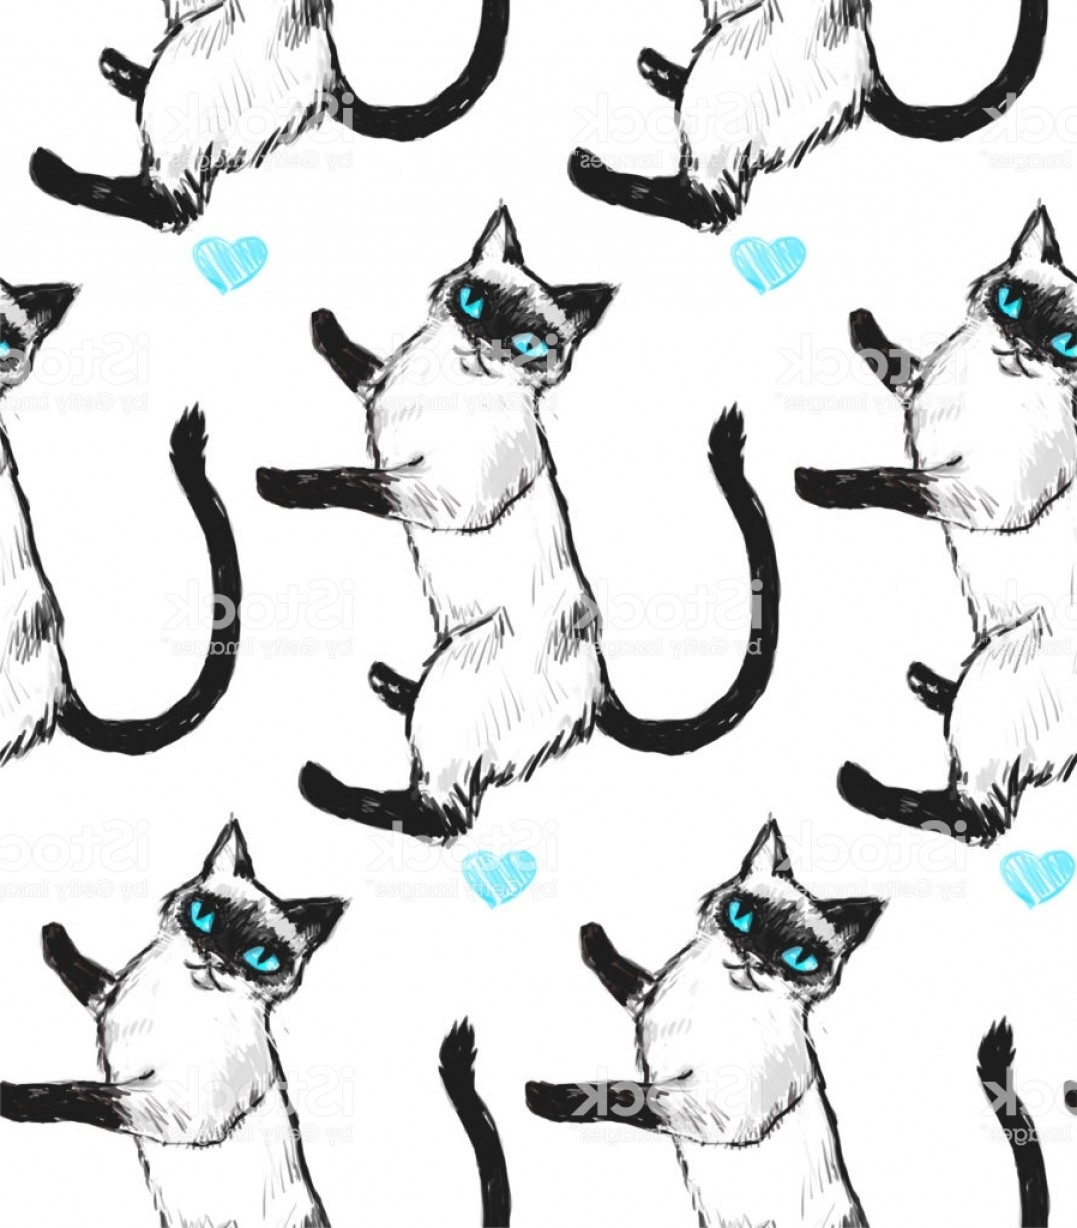 Siamese Cat Vector Transparent Background: Seamless Texture With Nice Siamese Cat With Blue Eyes Repeating Background Can Be Gm